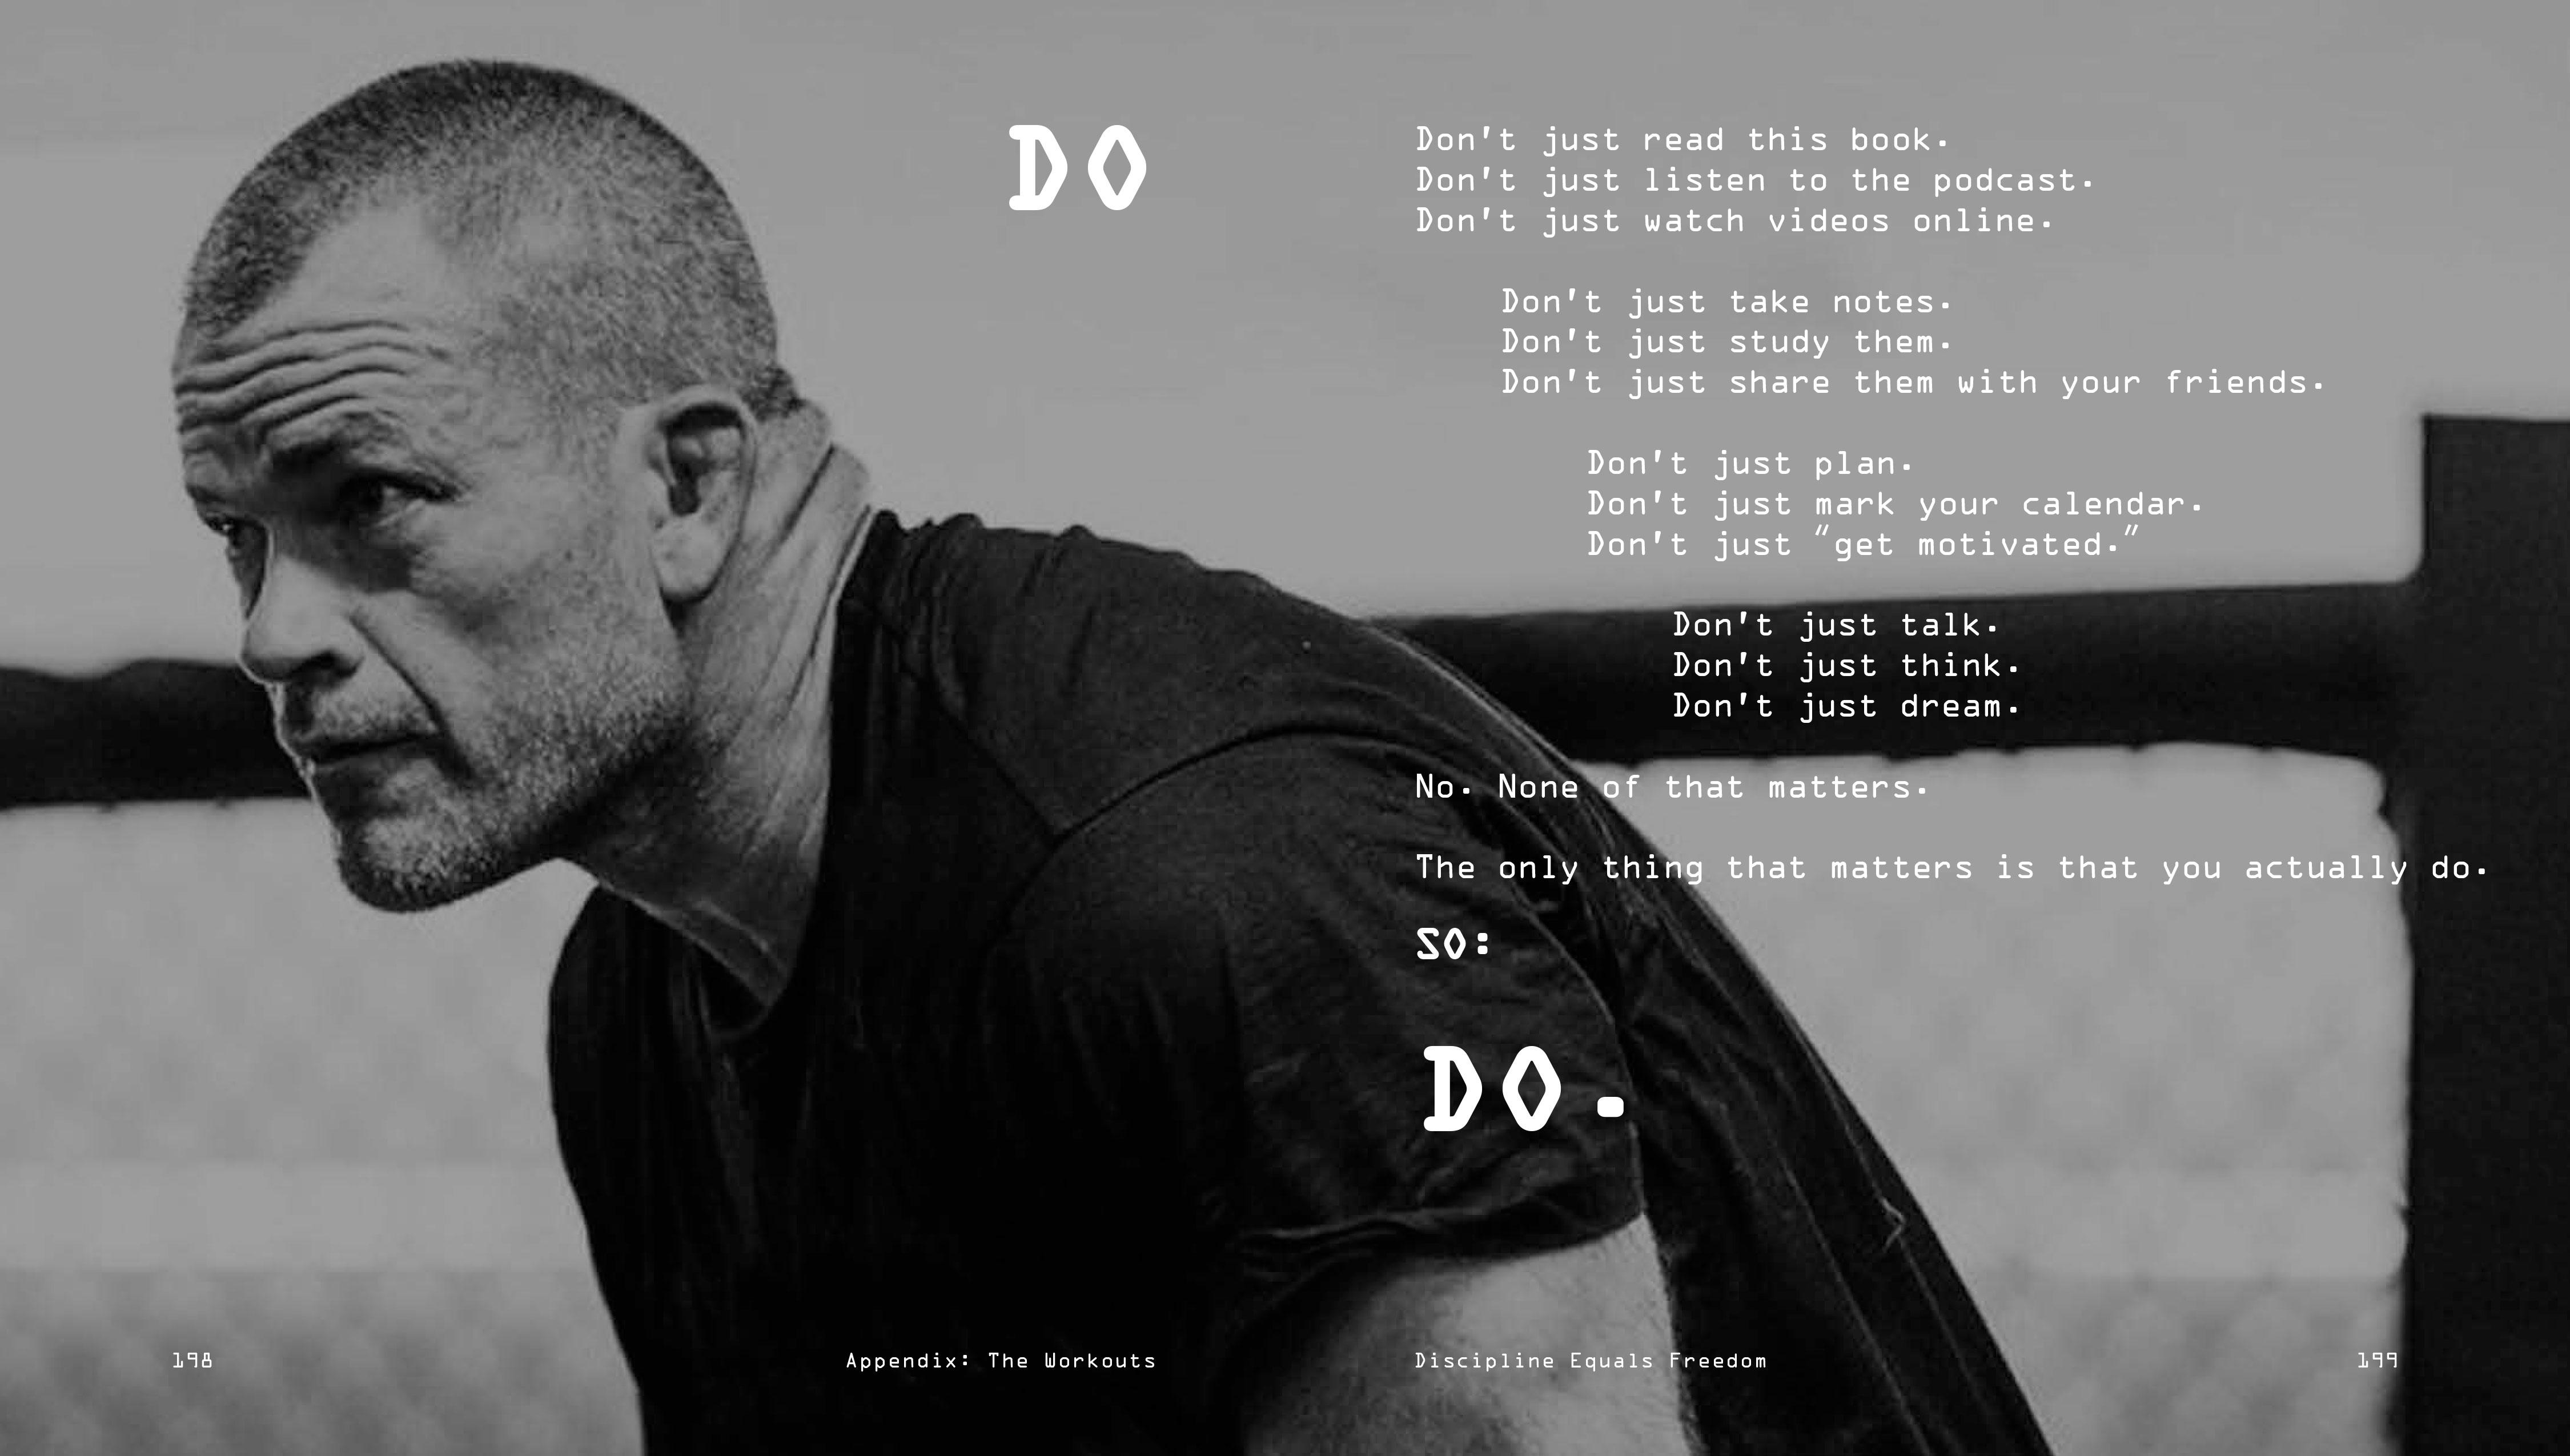 discipline equals dom field manual jocko willink  view larger